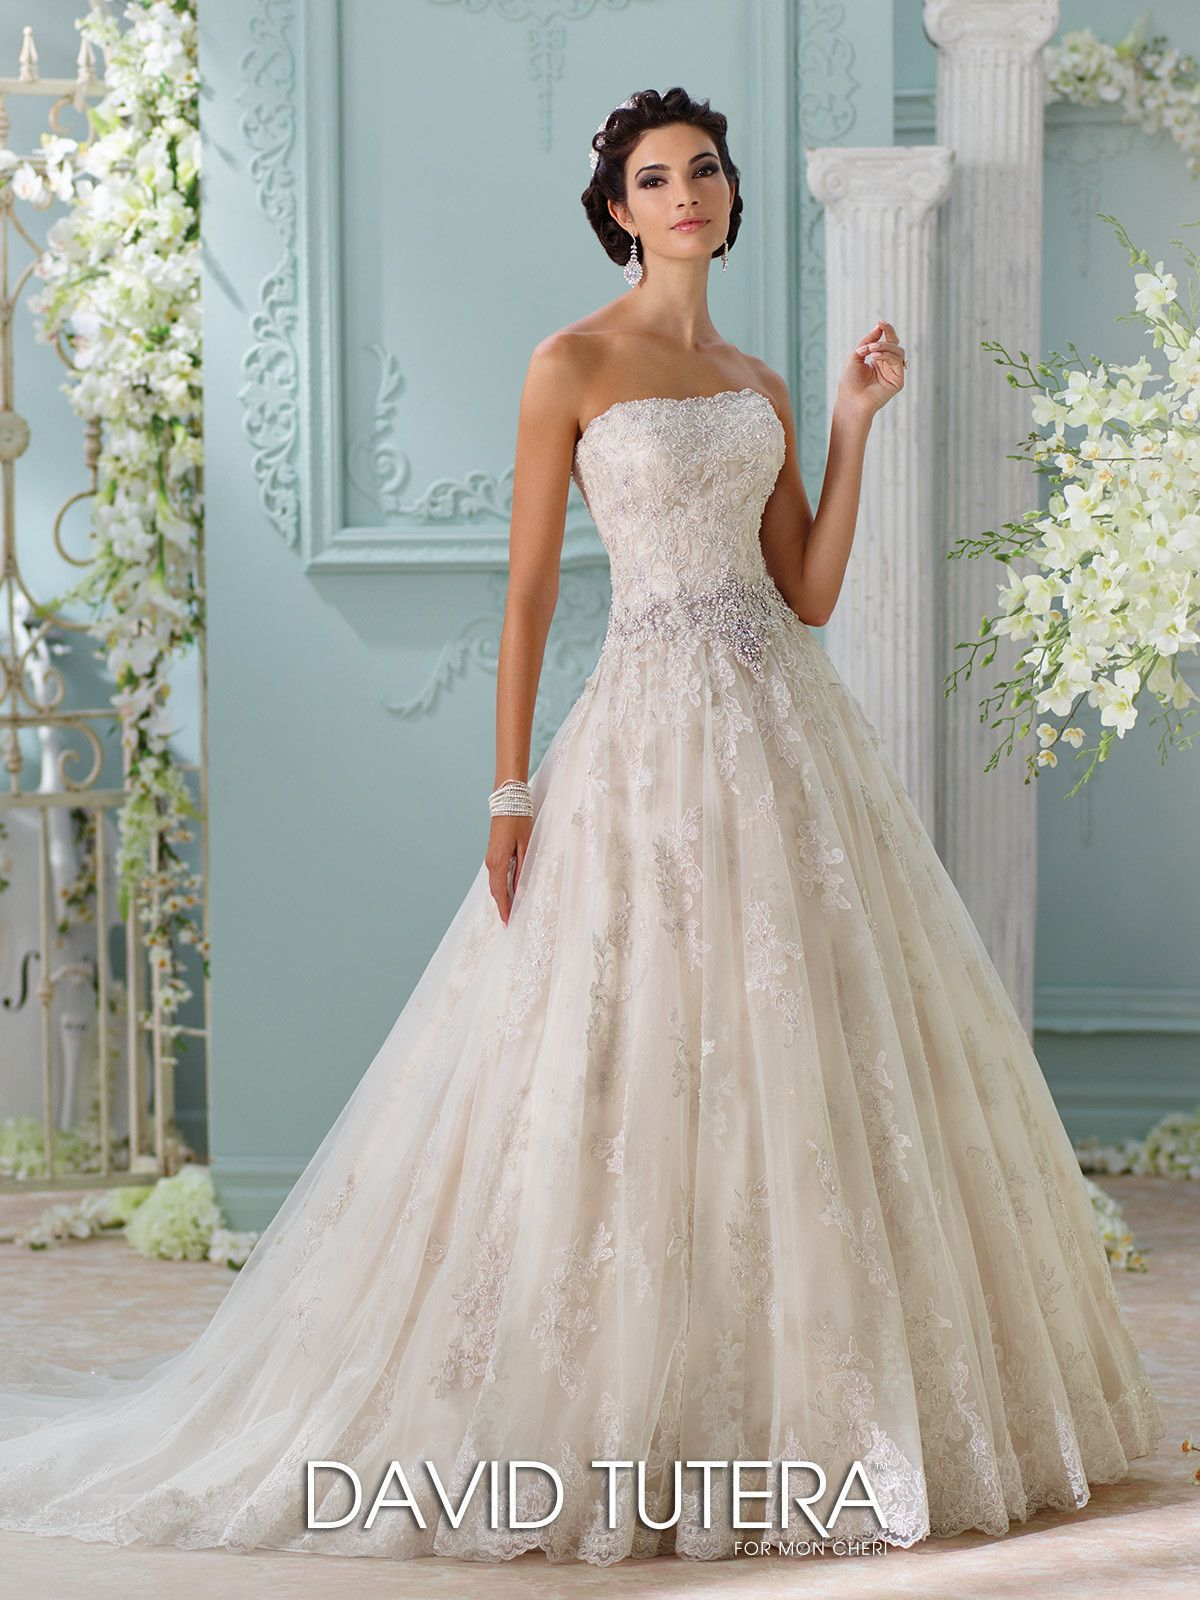 Blog products pinterest david tutera bridal gowns and gowns